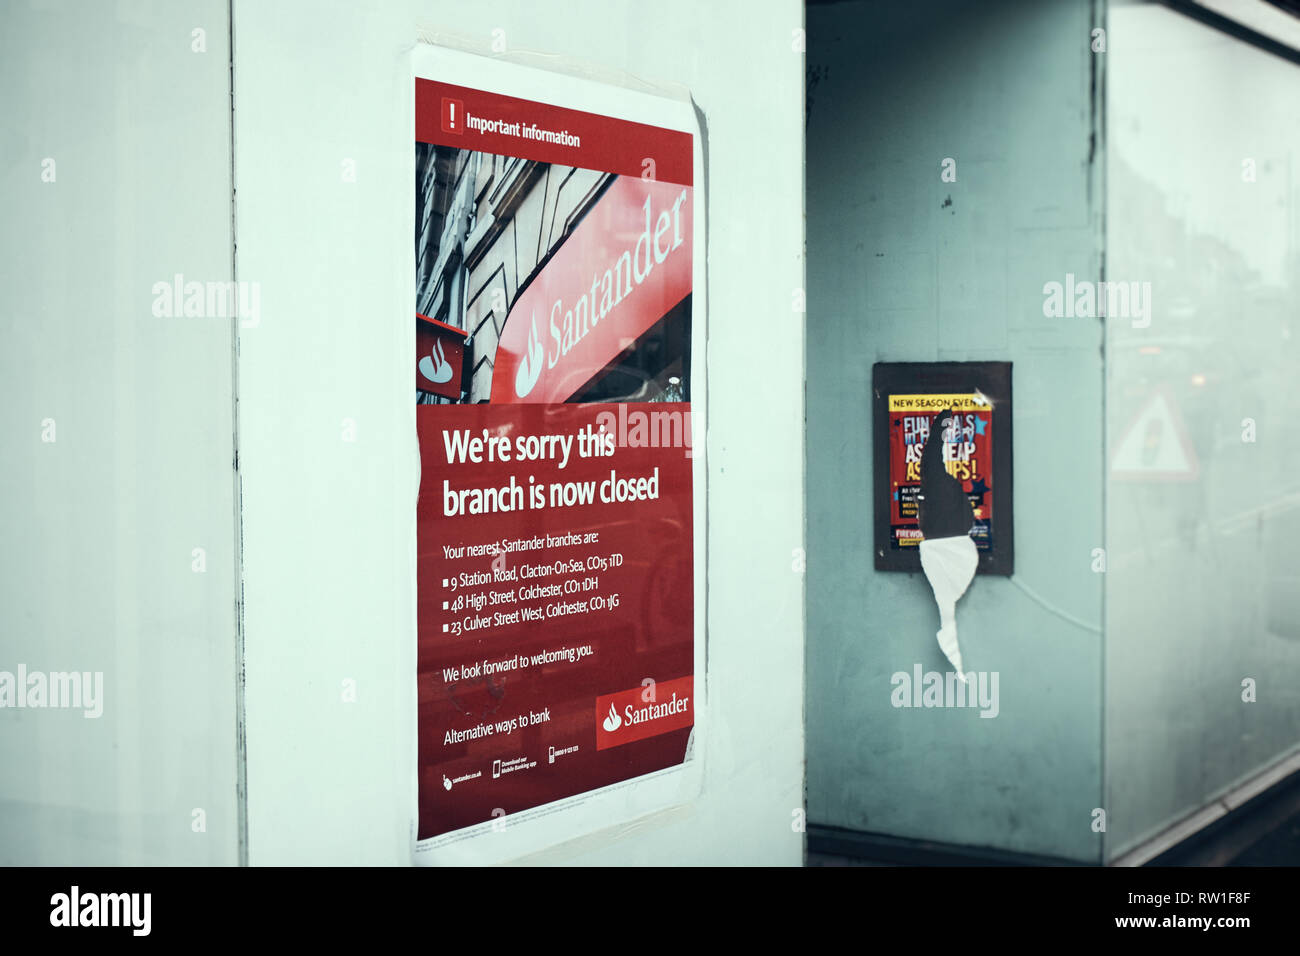 Harwich & Dovercourt, Essex, ENGLAND - March 3, 2019: Side view of a poster informing of the branch closure for Santander in Harwich High Street with  - Stock Image